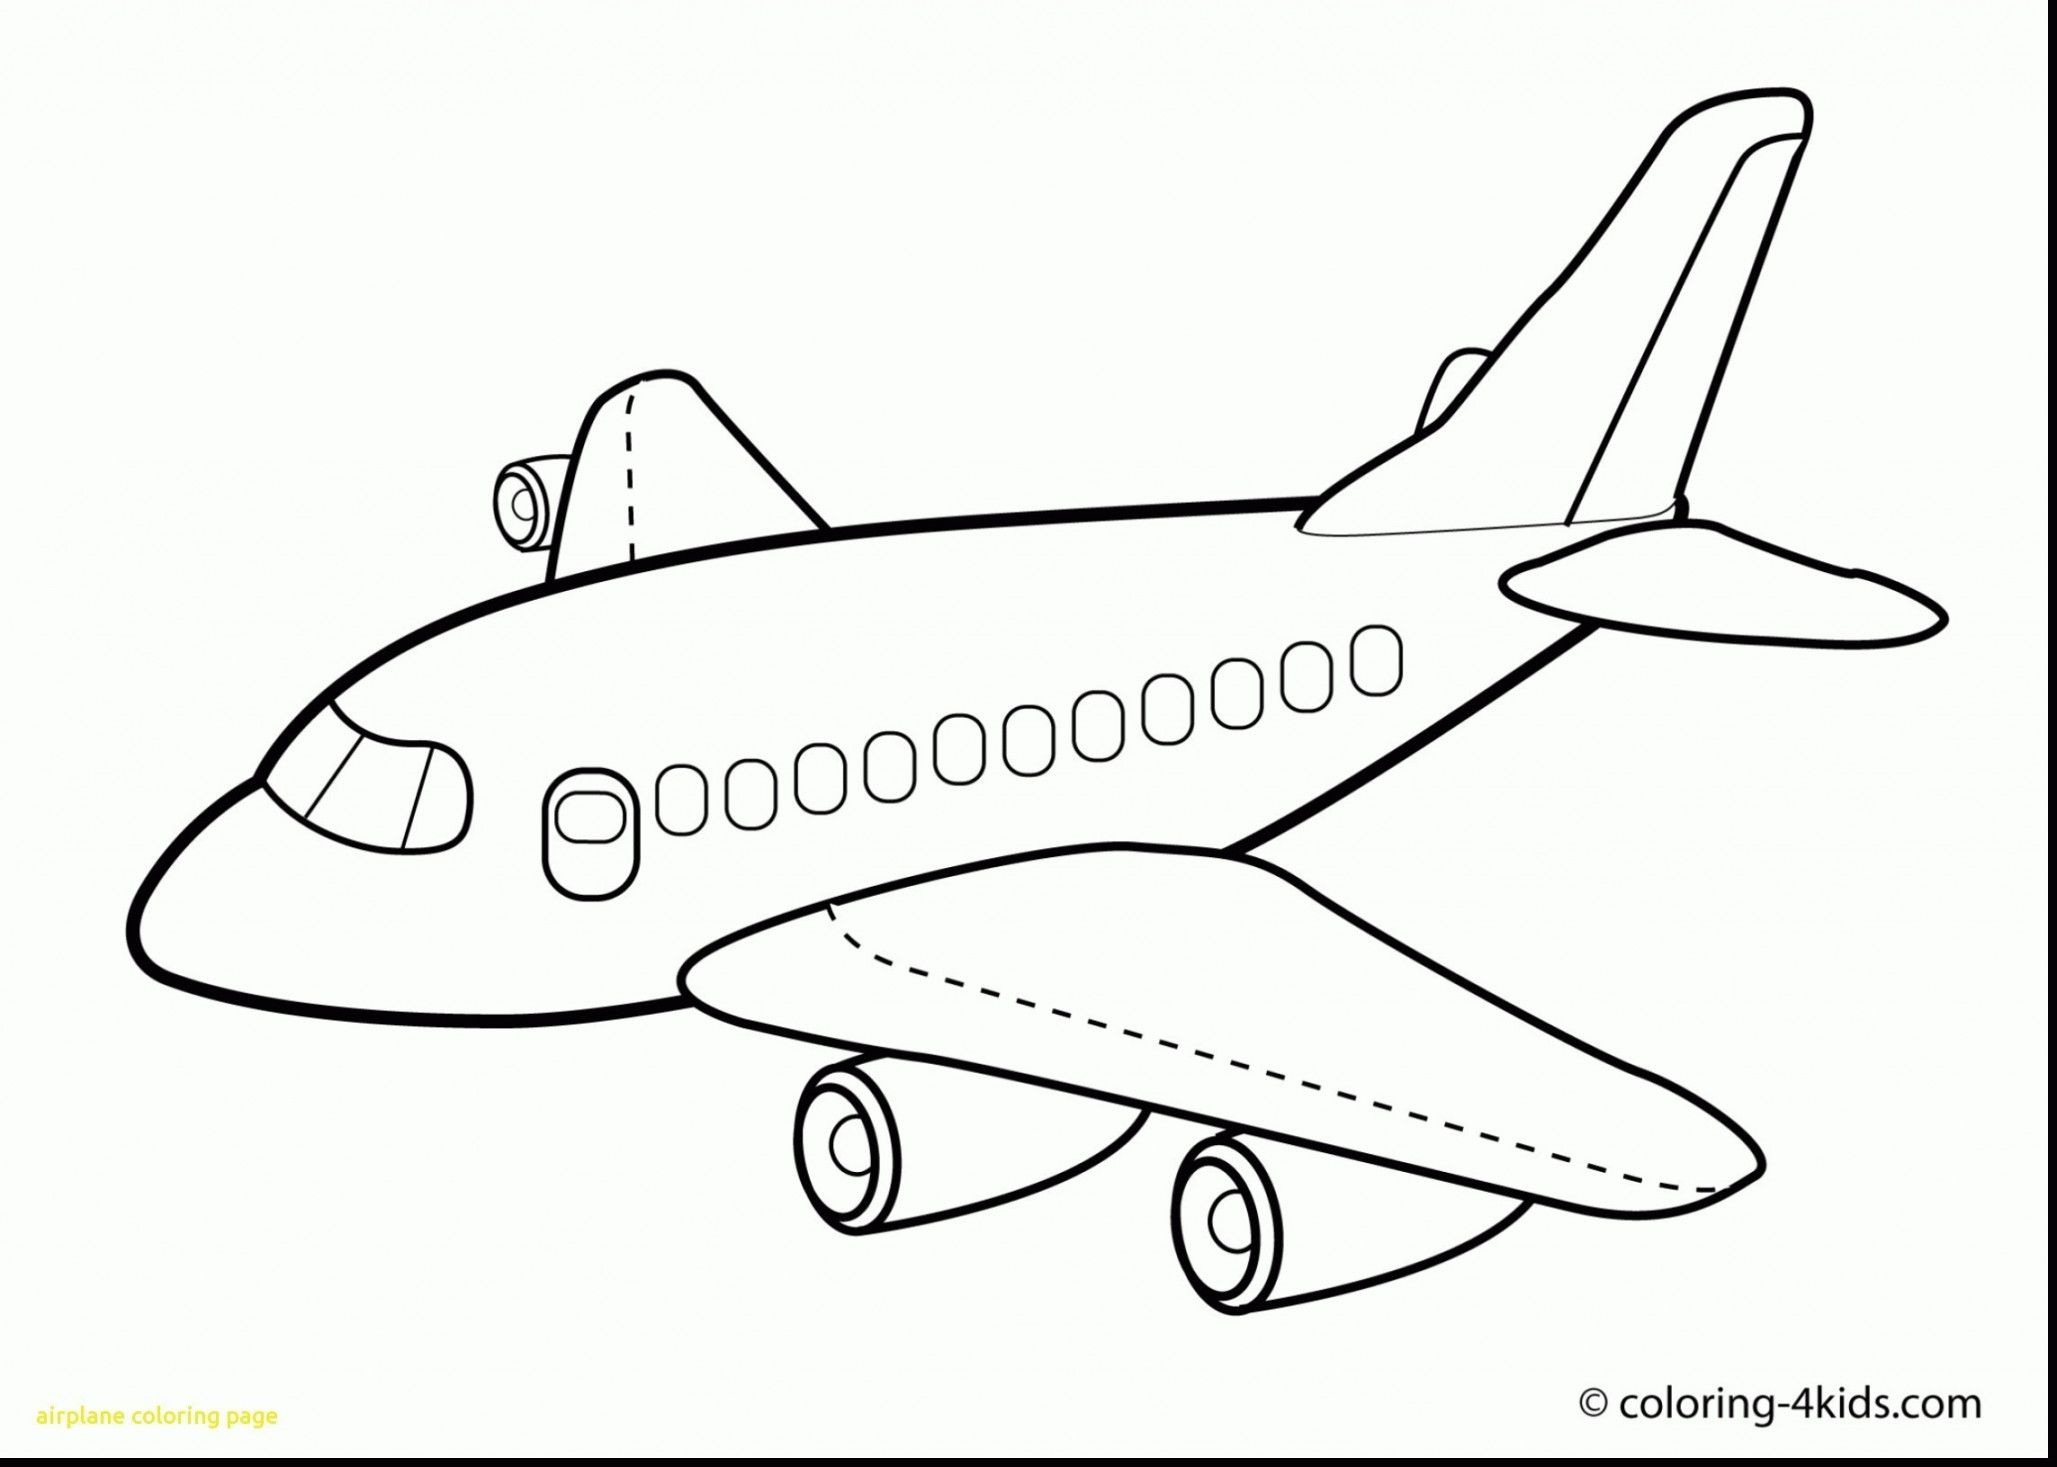 Airplane Coloring Page Jets Logo Coloring Page Collections Of Fighter Jet Coloring Page Entitlementtrap Com Airplane Coloring Pages Airplane Drawing Plane Drawing